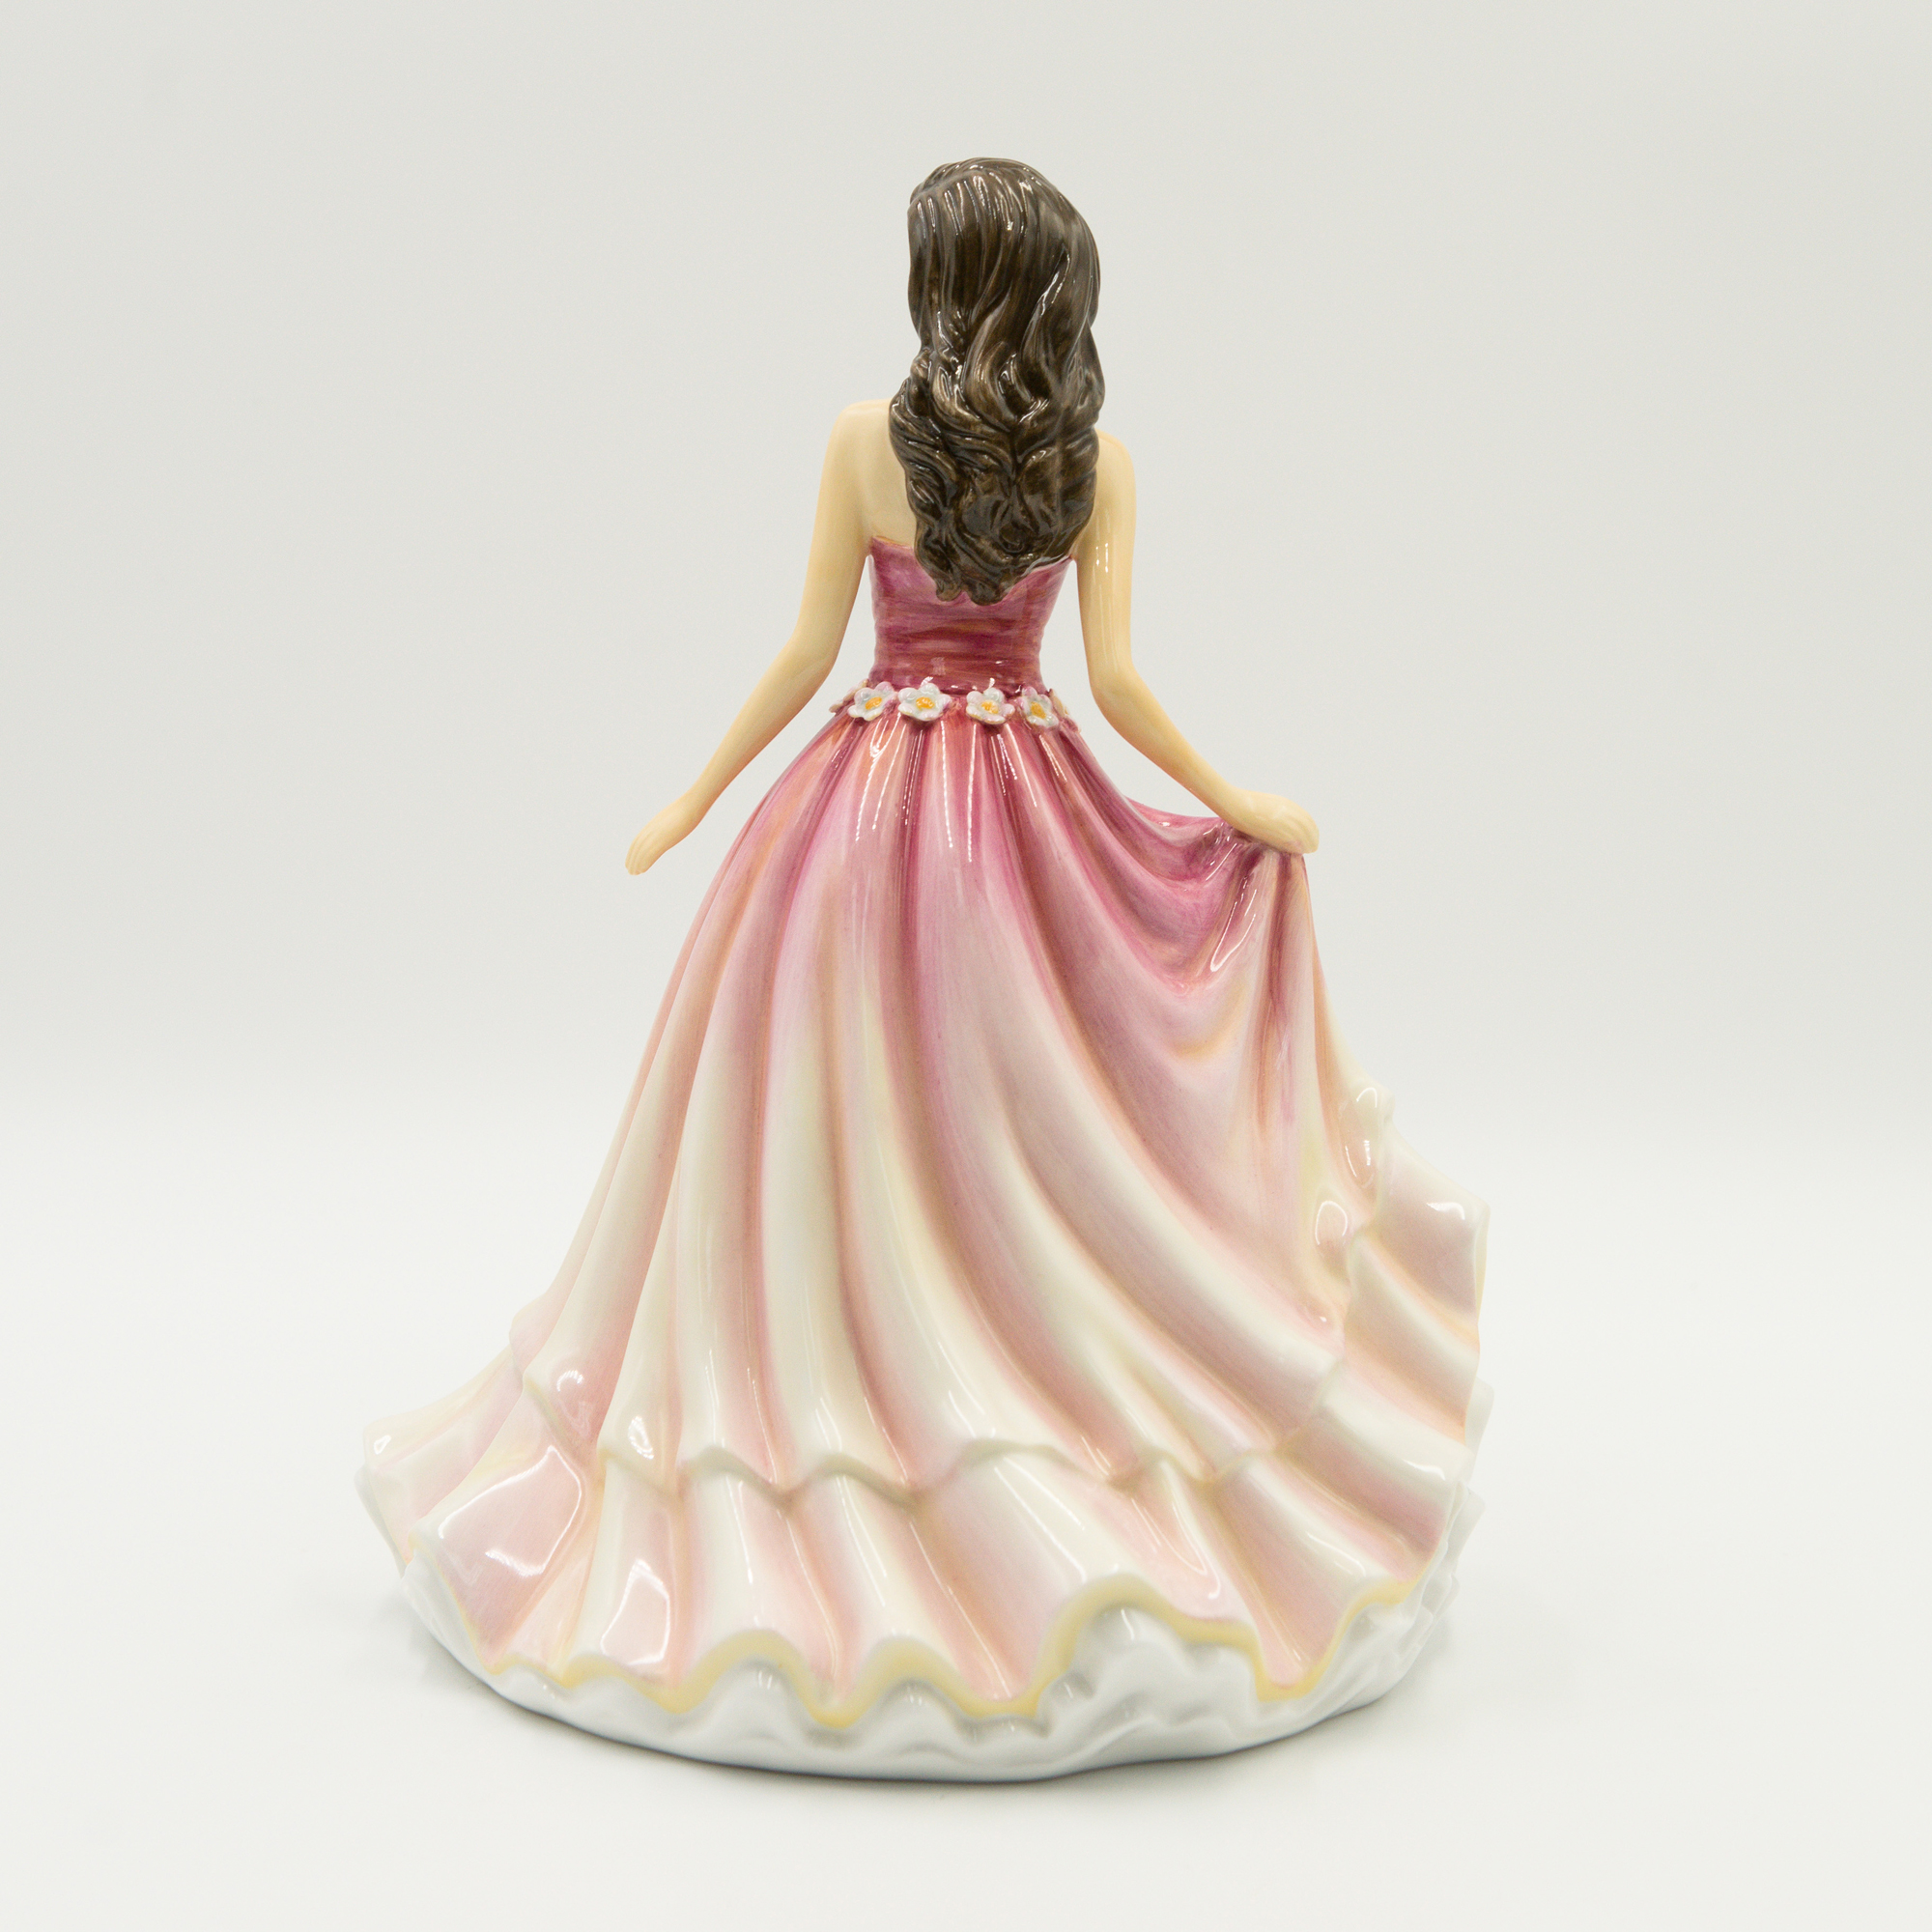 Treasured Love Daisy HN5880A Royal Doulton Figurine